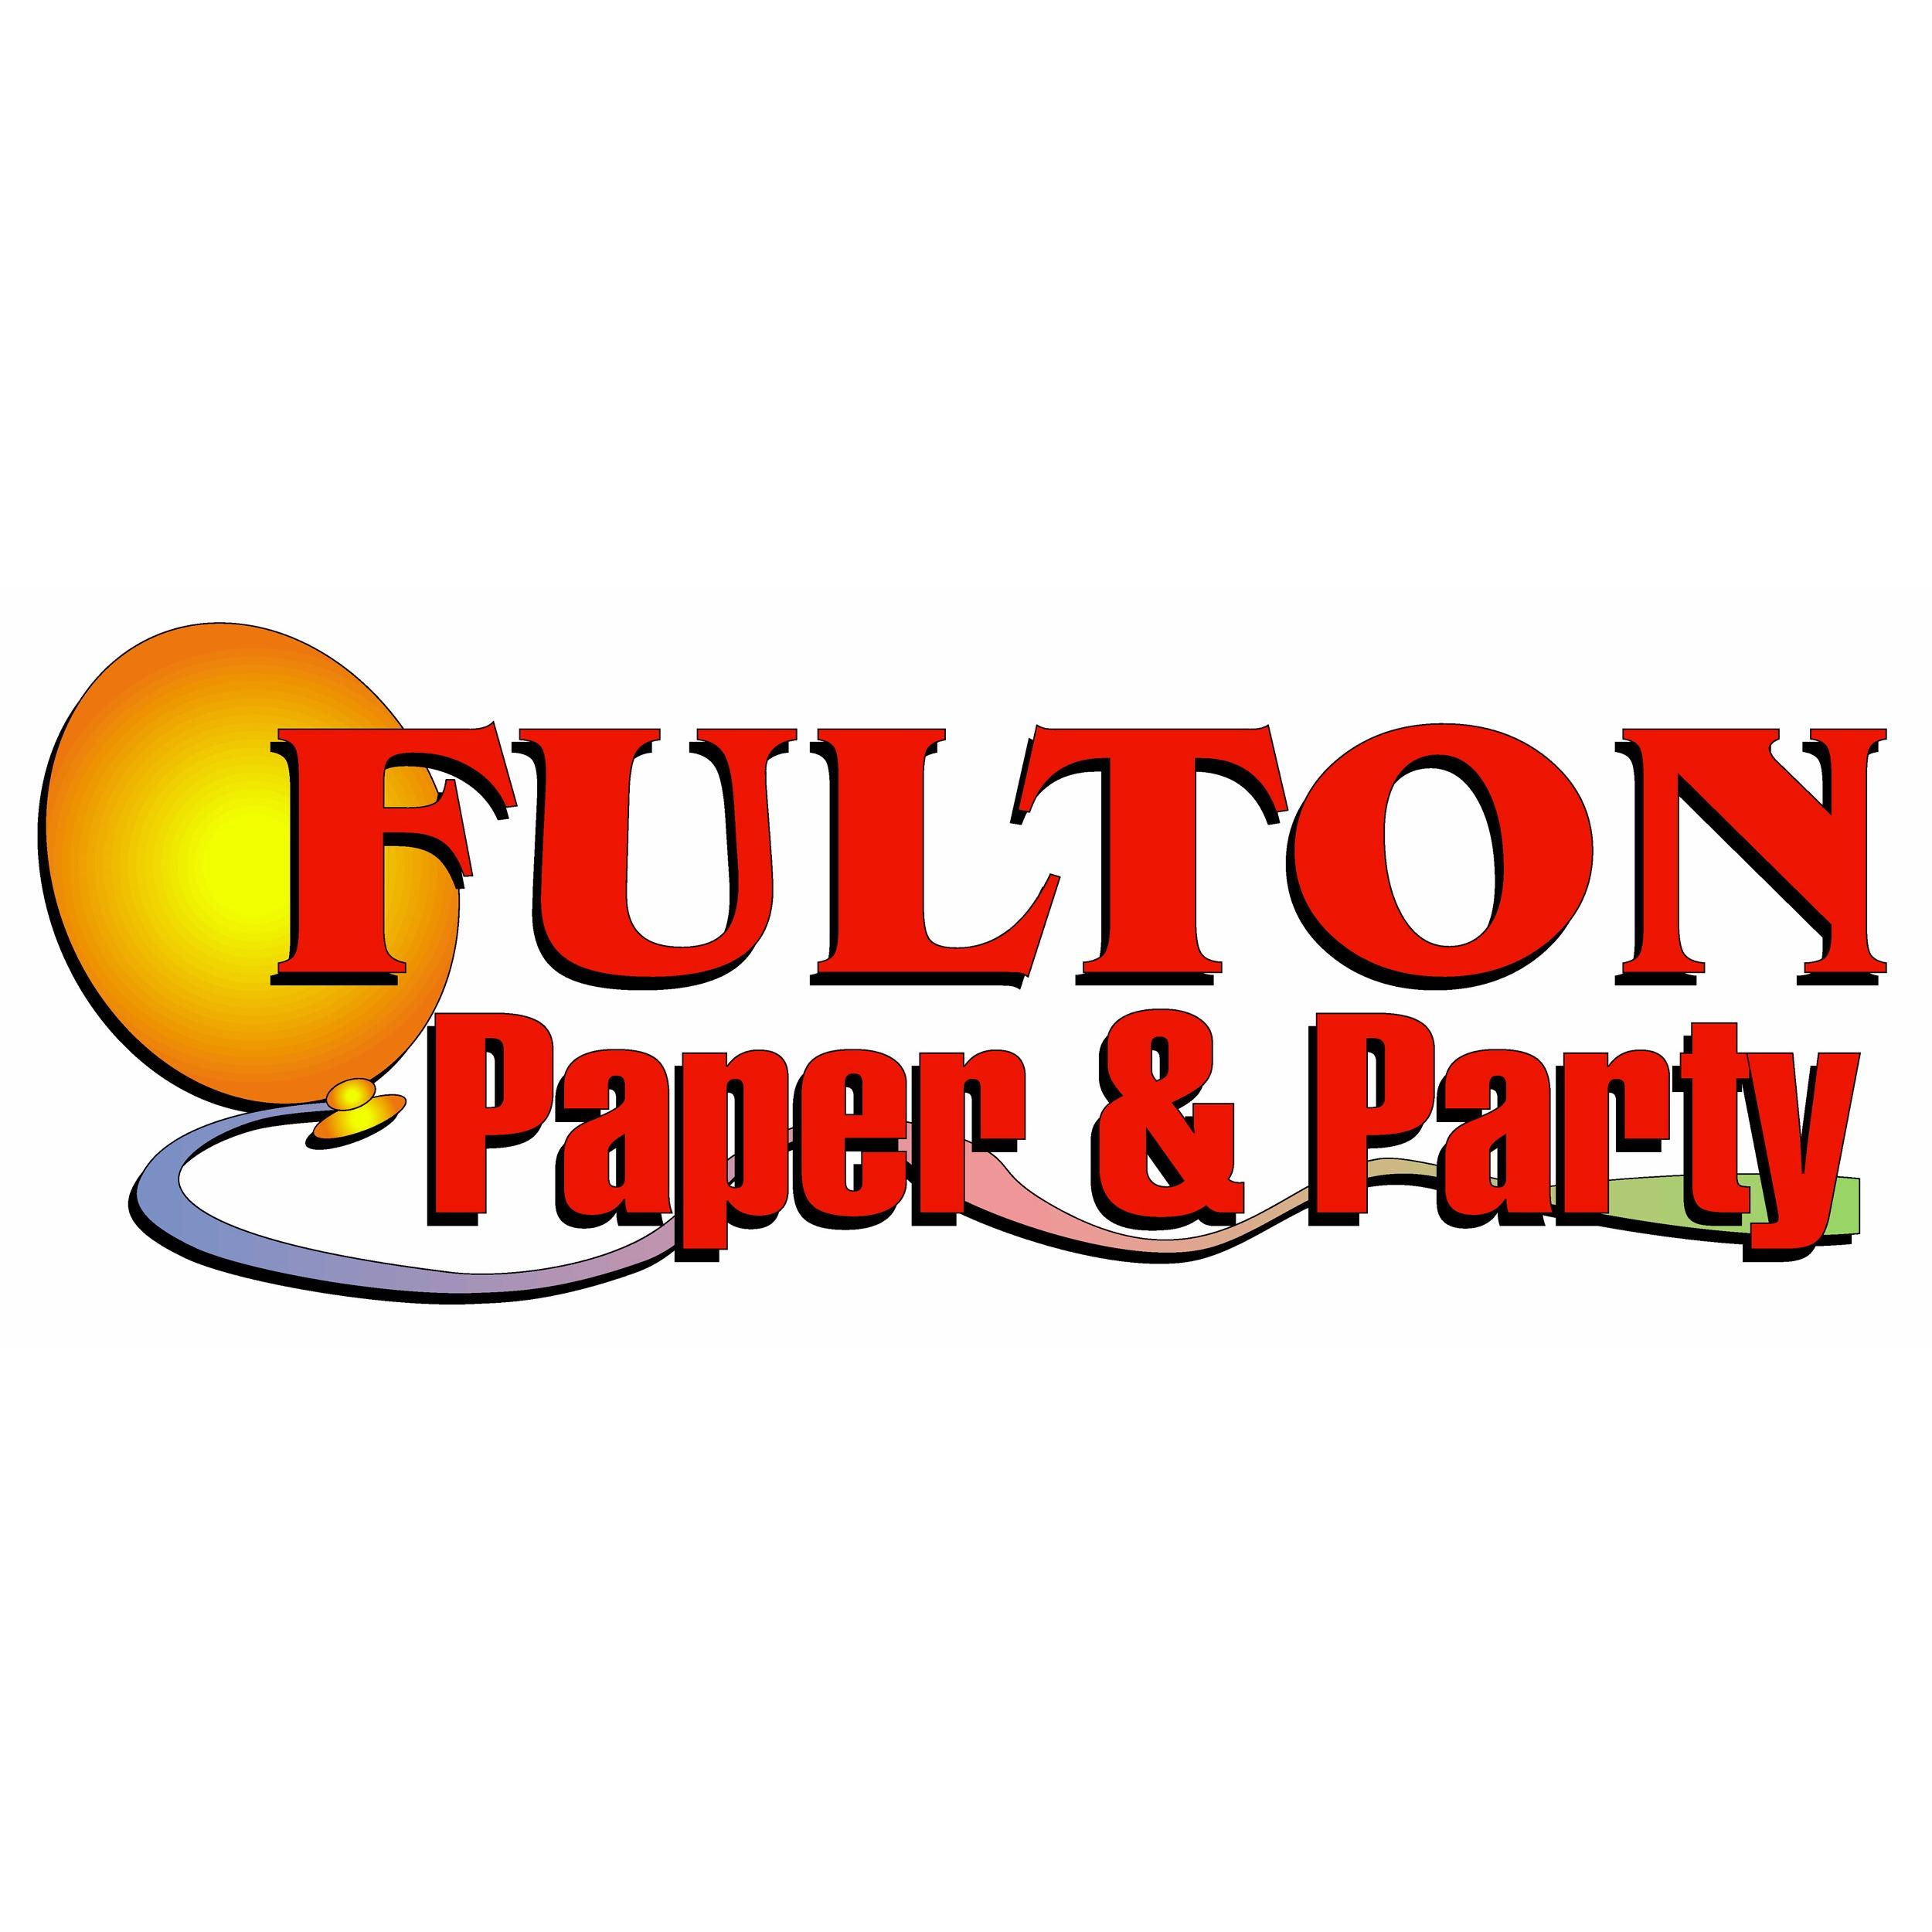 Fulton Paper & Party Supplies